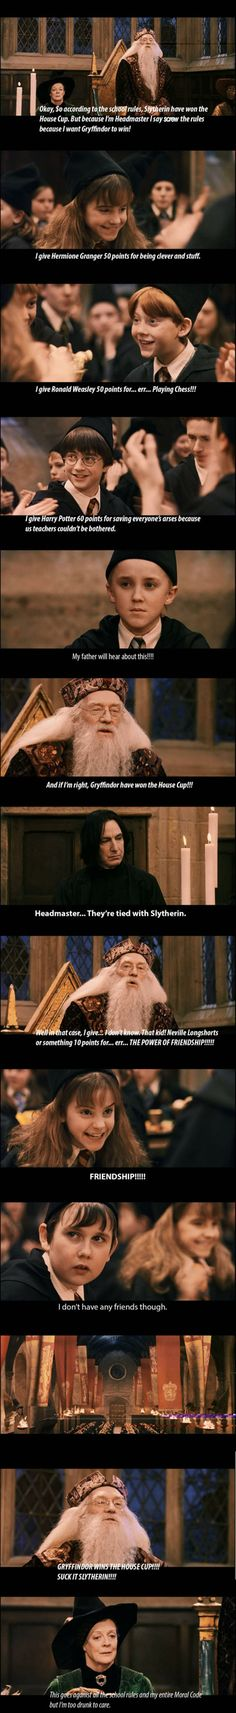 Screwing Slytherin since 1997 Dumbledore: Screwing Slytherin since 1997 bahaha! I always think how much bs the point system is in this!Dumbledore: Screwing Slytherin since 1997 bahaha! I always think how much bs the point system is in this! Harry Potter Jokes, Harry Potter Fandom, Slytherin, Film Anime, Harry Potter Universal, American Horror Story, Fangirl, Funny Pictures, Funny Pics